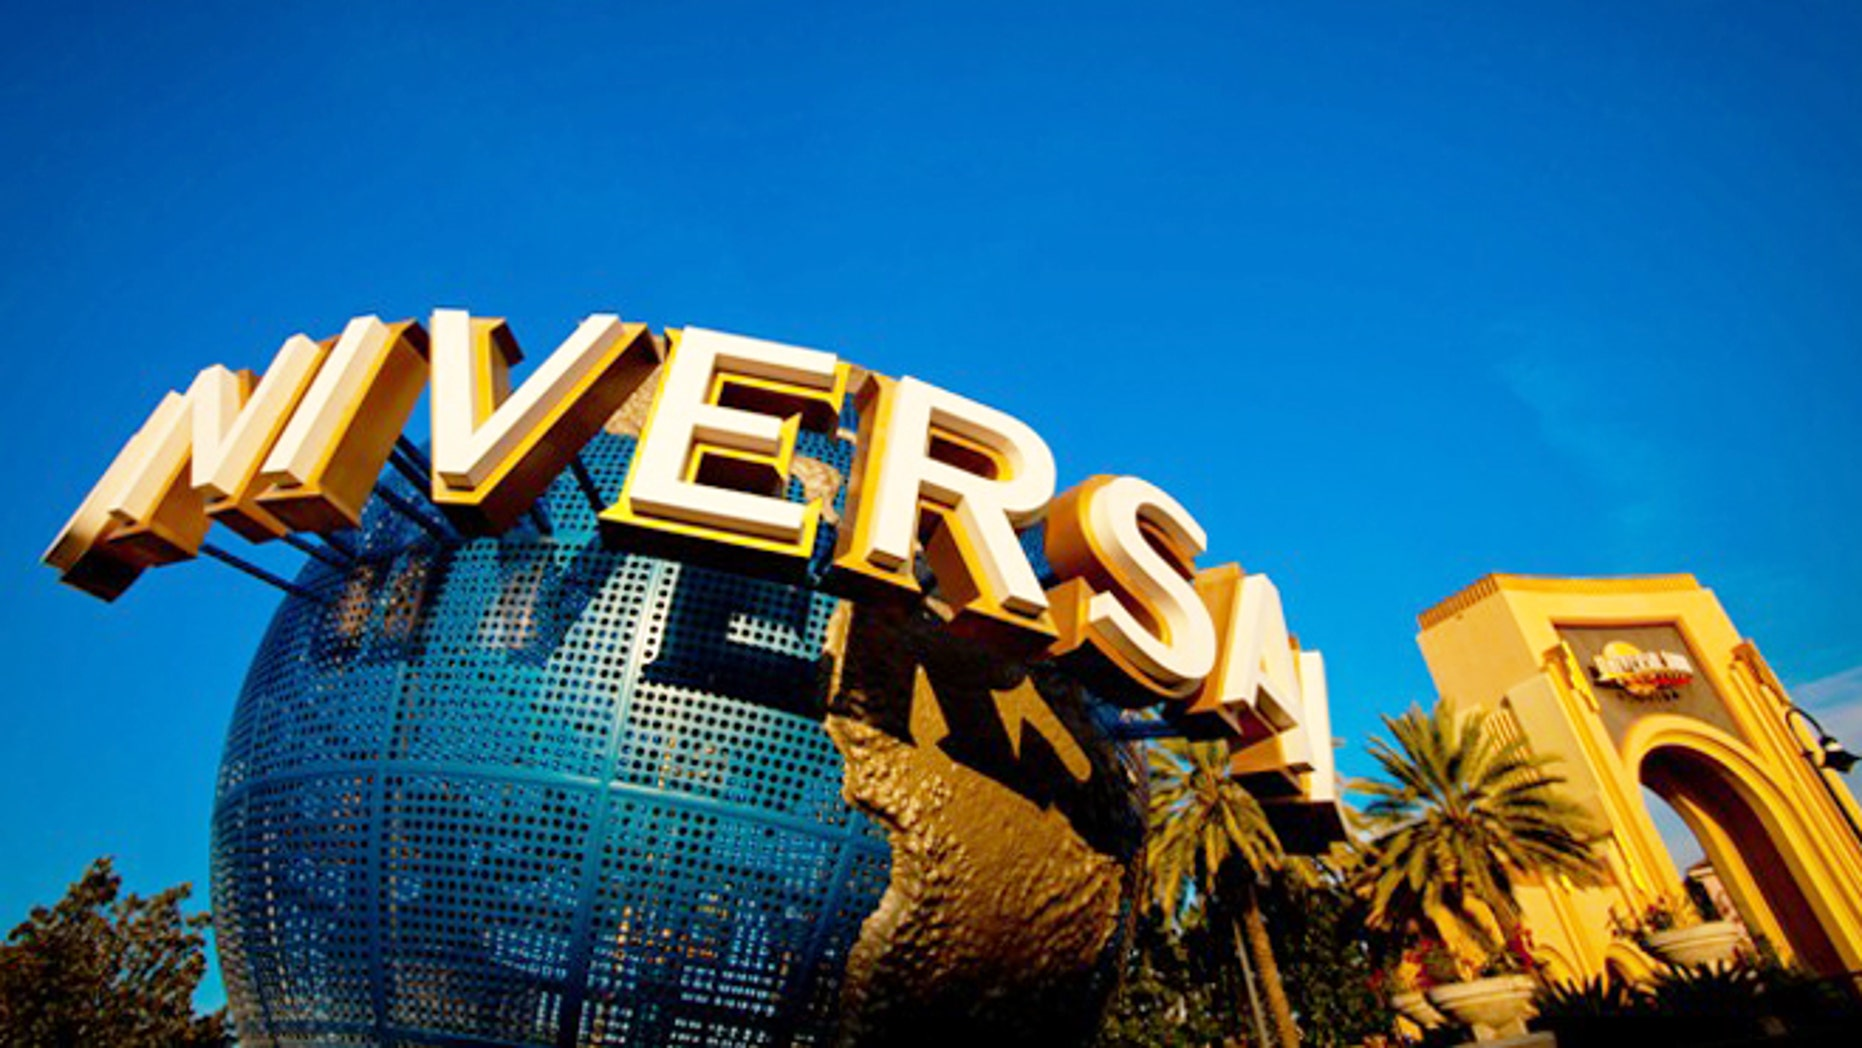 Universal is expanding its theme park empire in China.